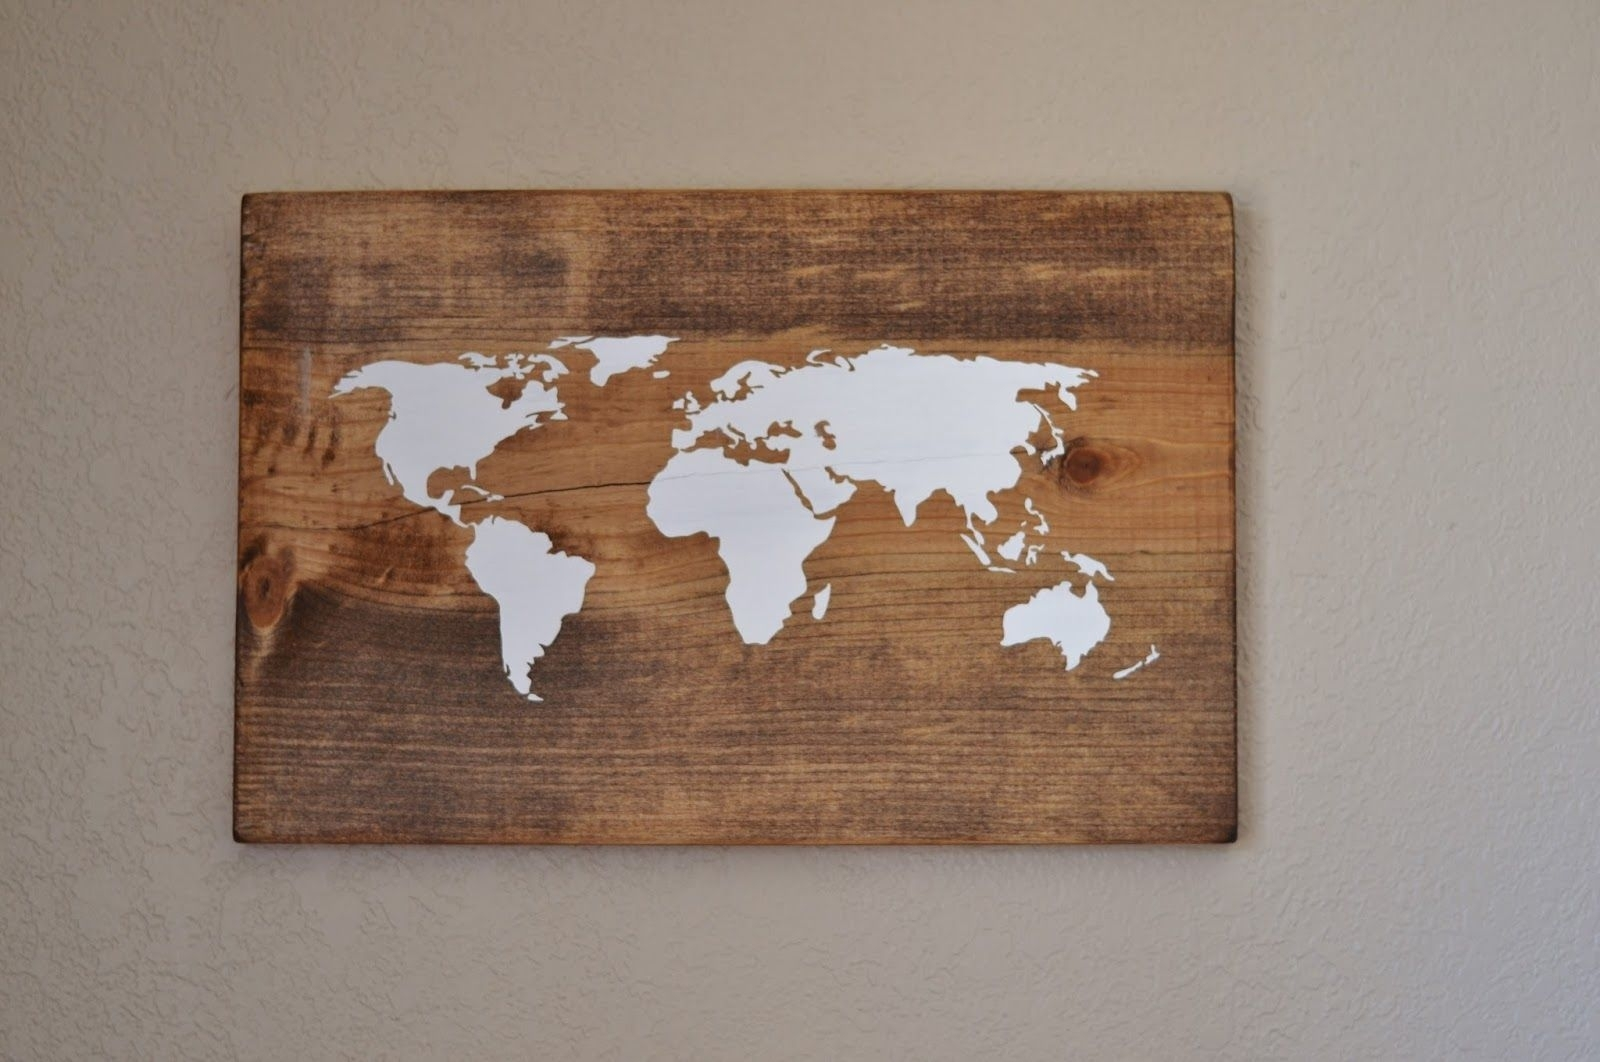 All Things Bright And Beautiful: Diy World Map Wall Art – Very Cool Throughout Most Up To Date Diy World Map Wall Art (View 3 of 20)